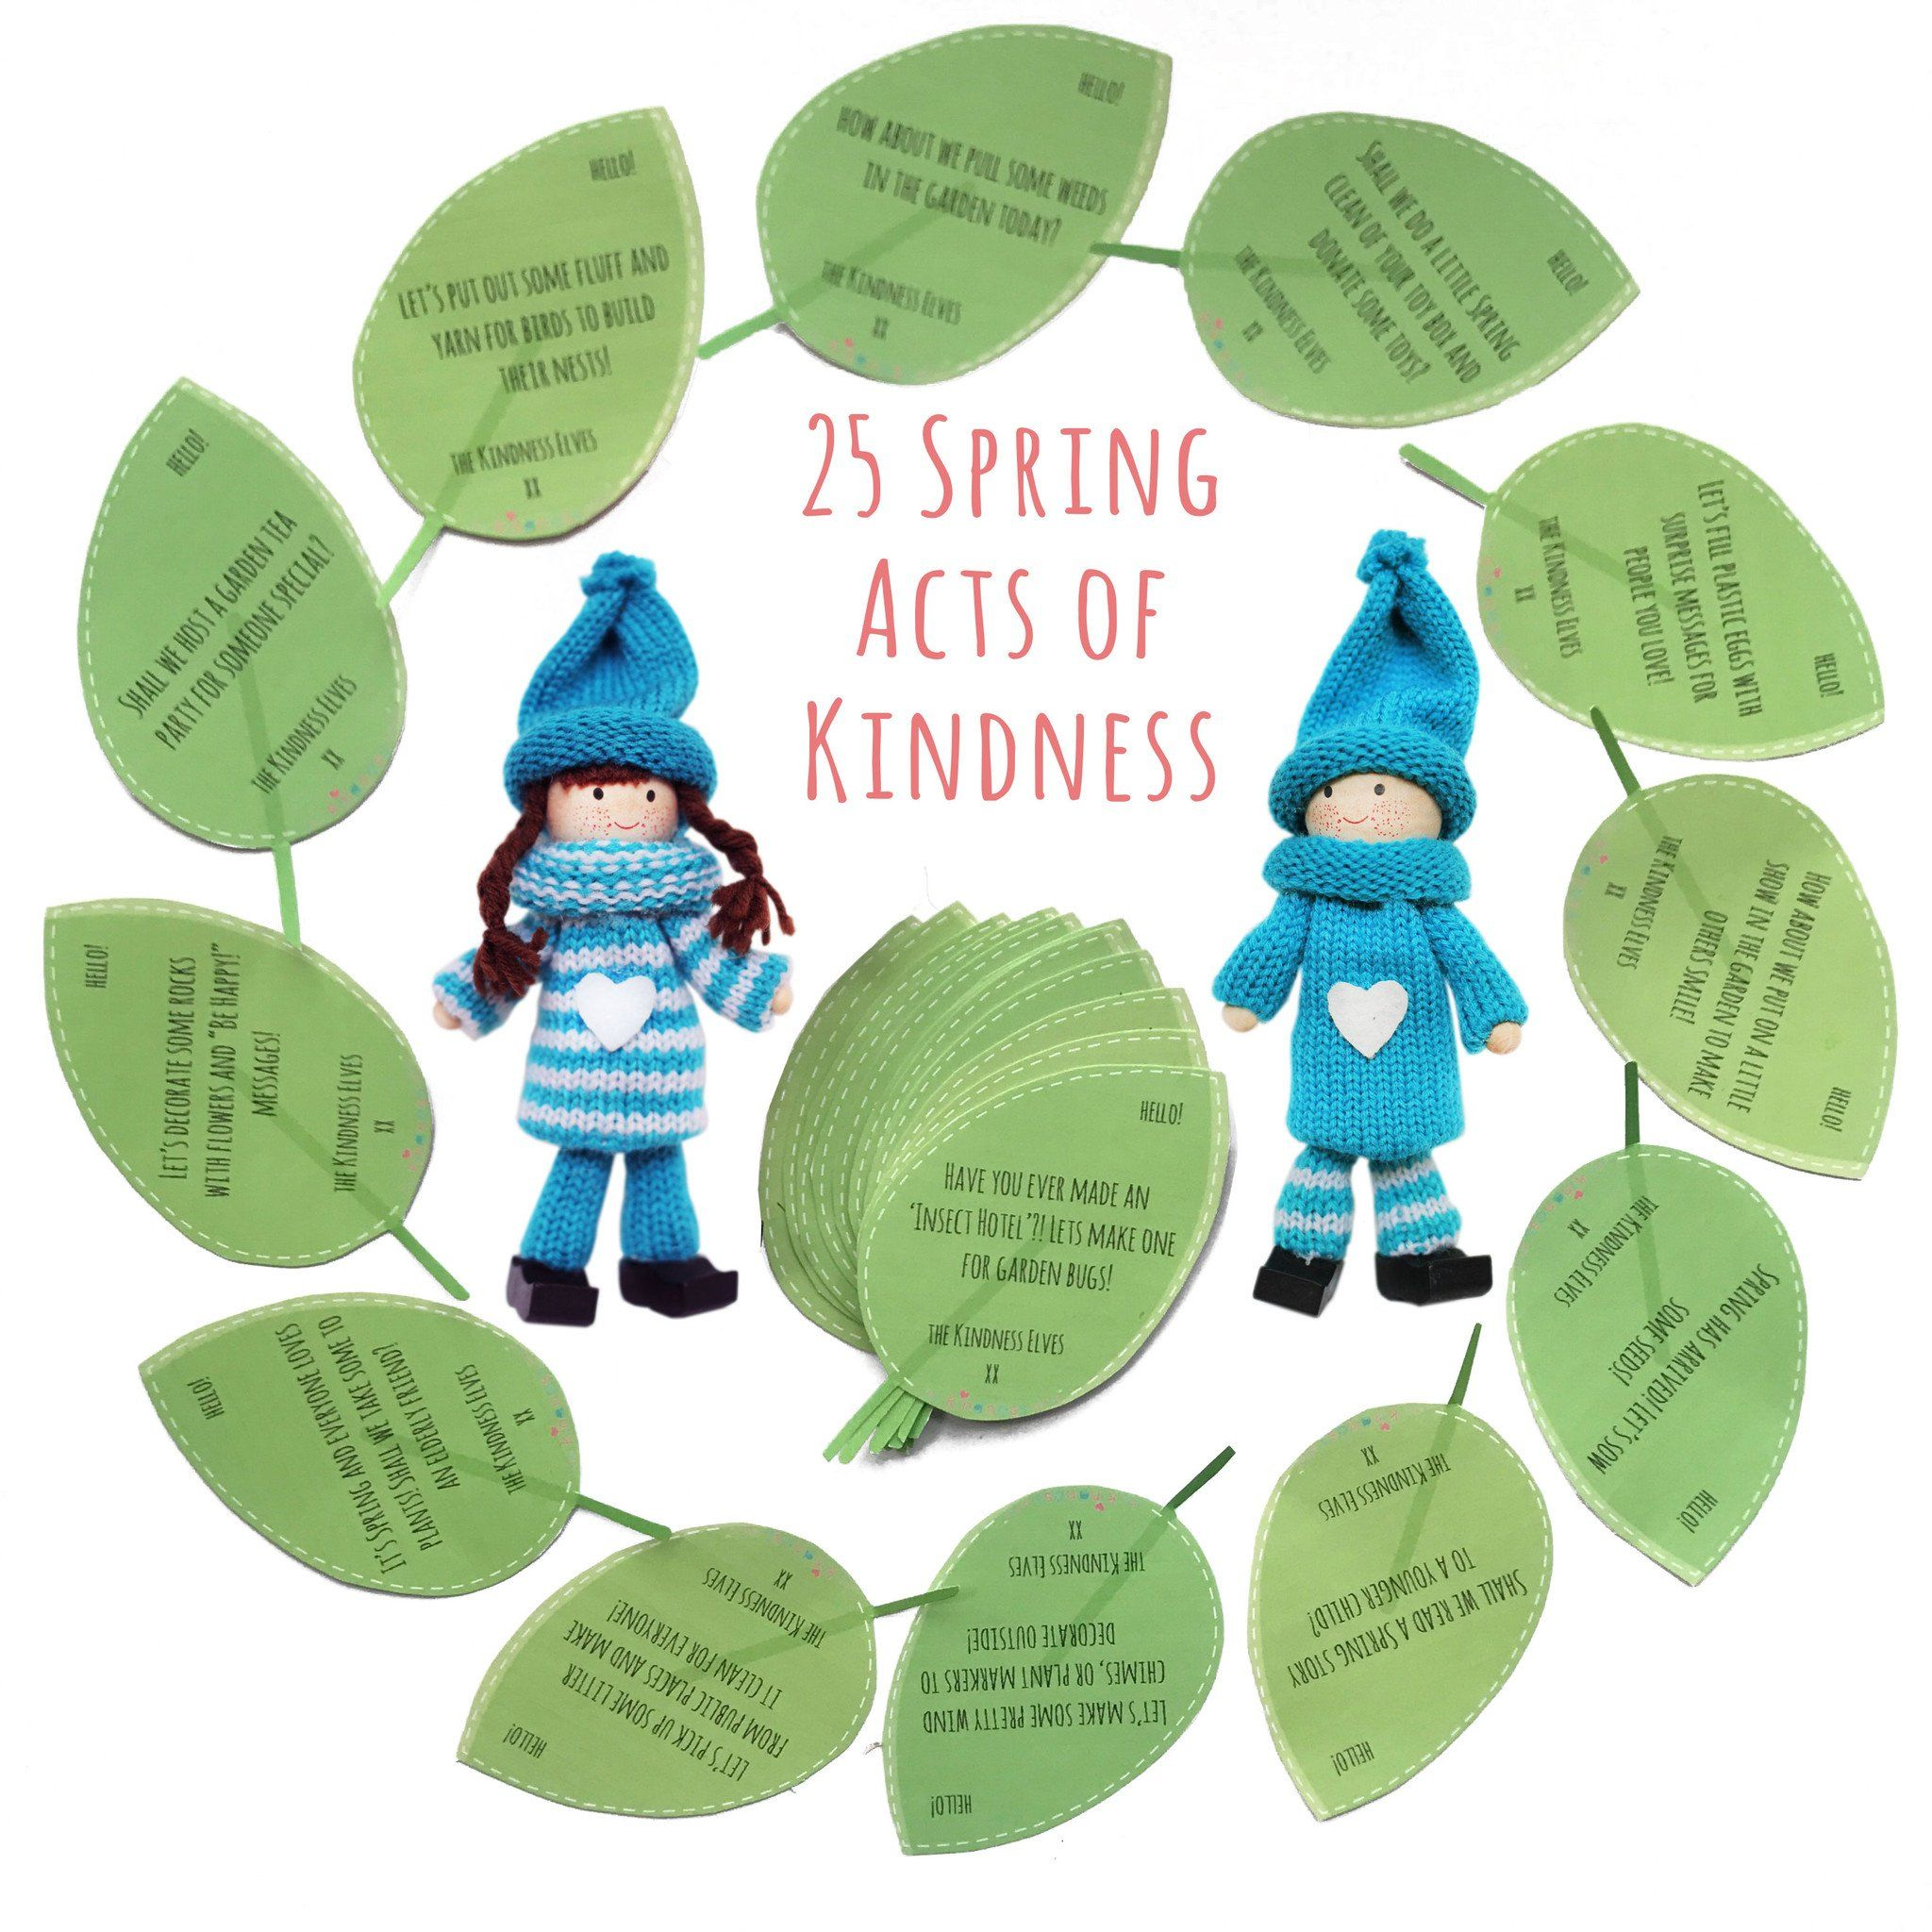 25 Spring Acts Of Kindness